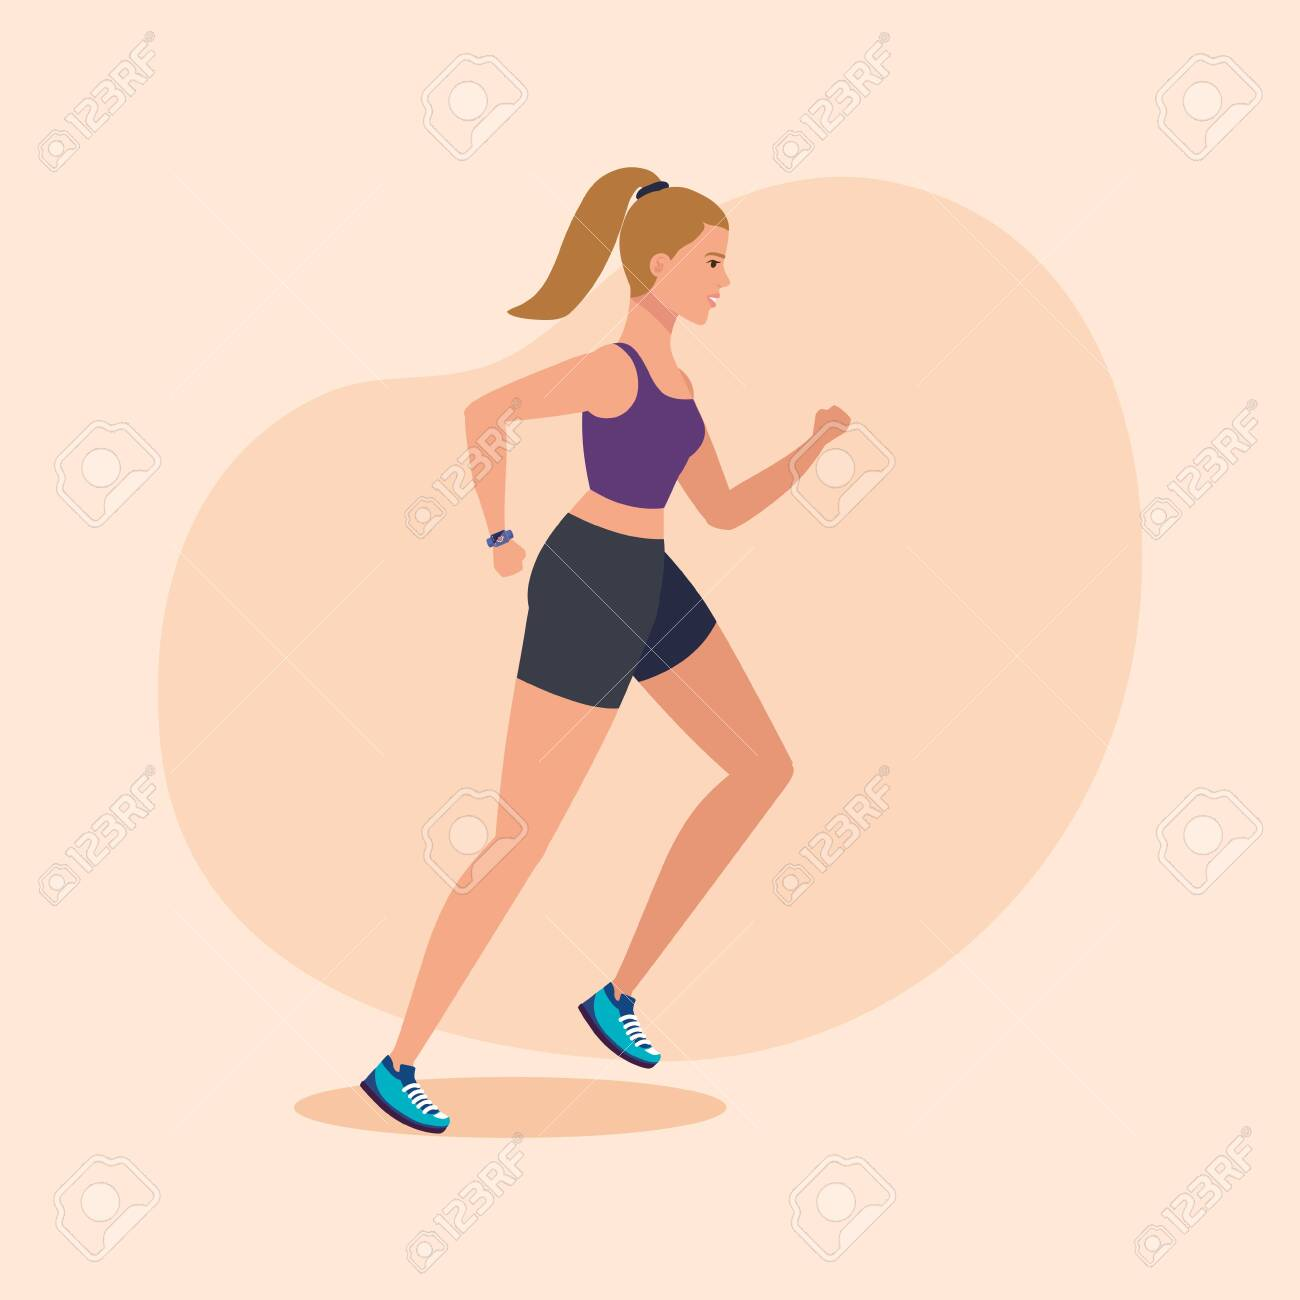 fitness woman running to practice sport over pink background, vector illustration - 133950048